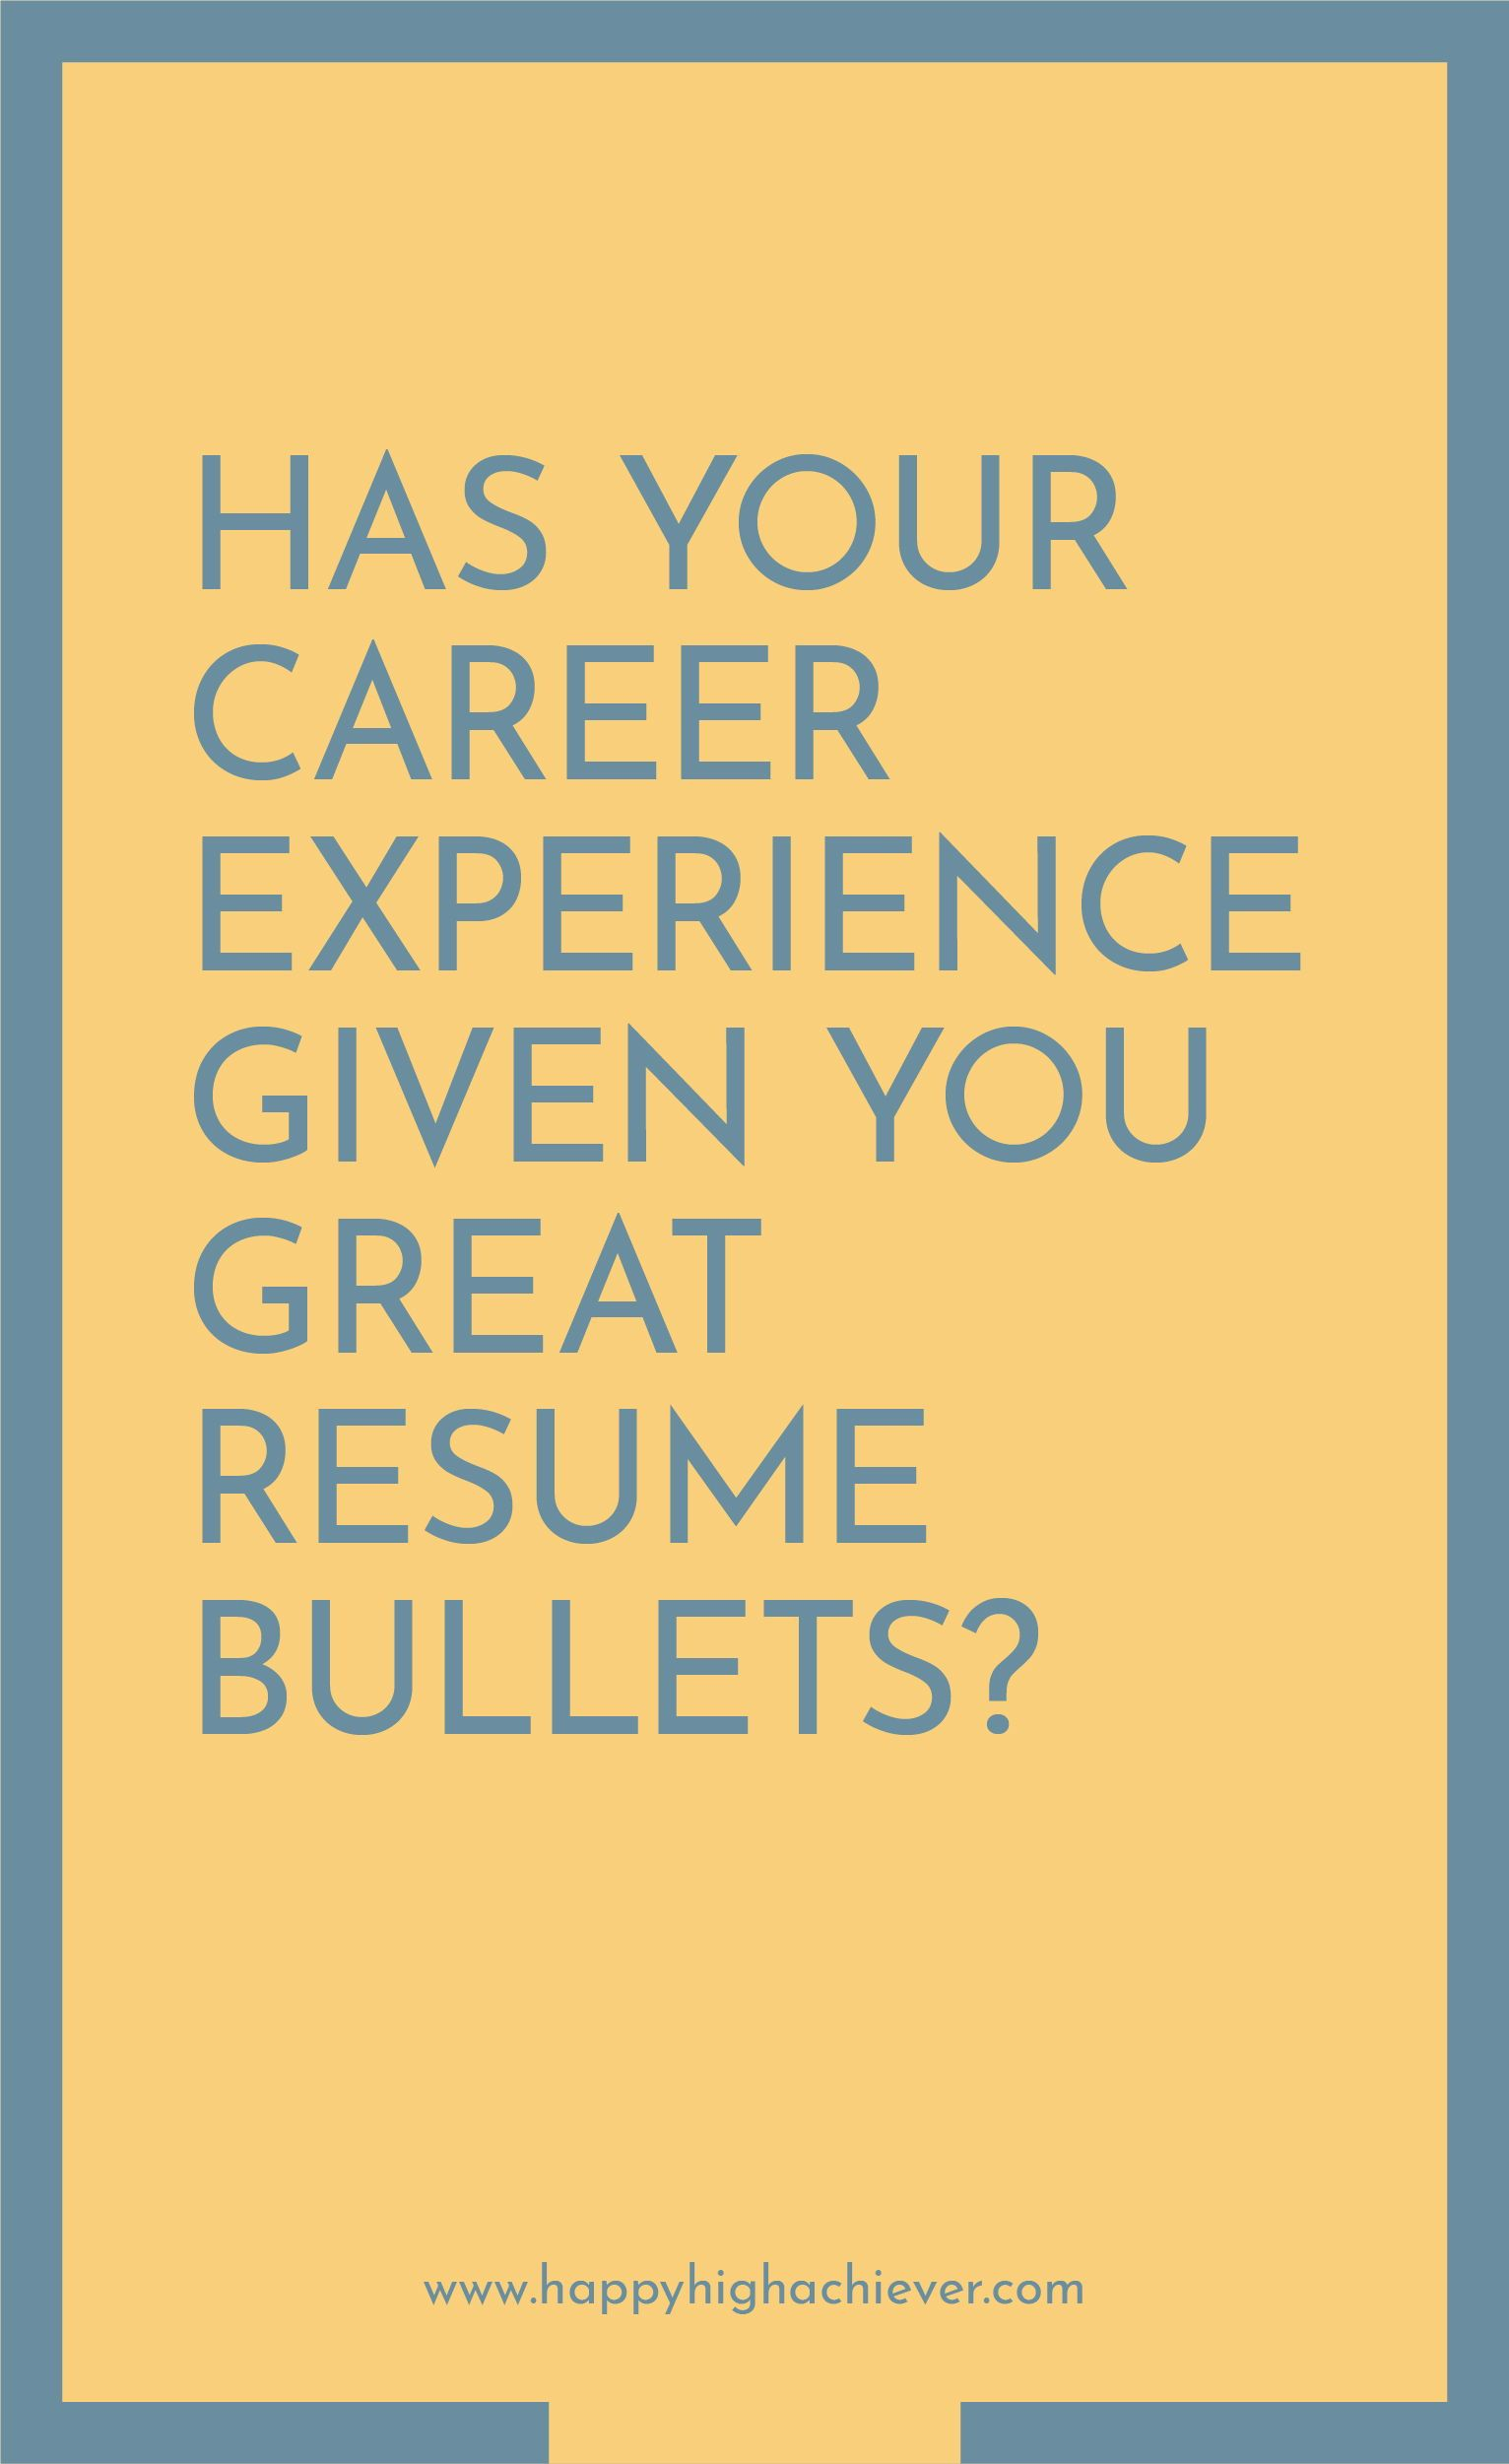 Has your career experience given you great resume bullets